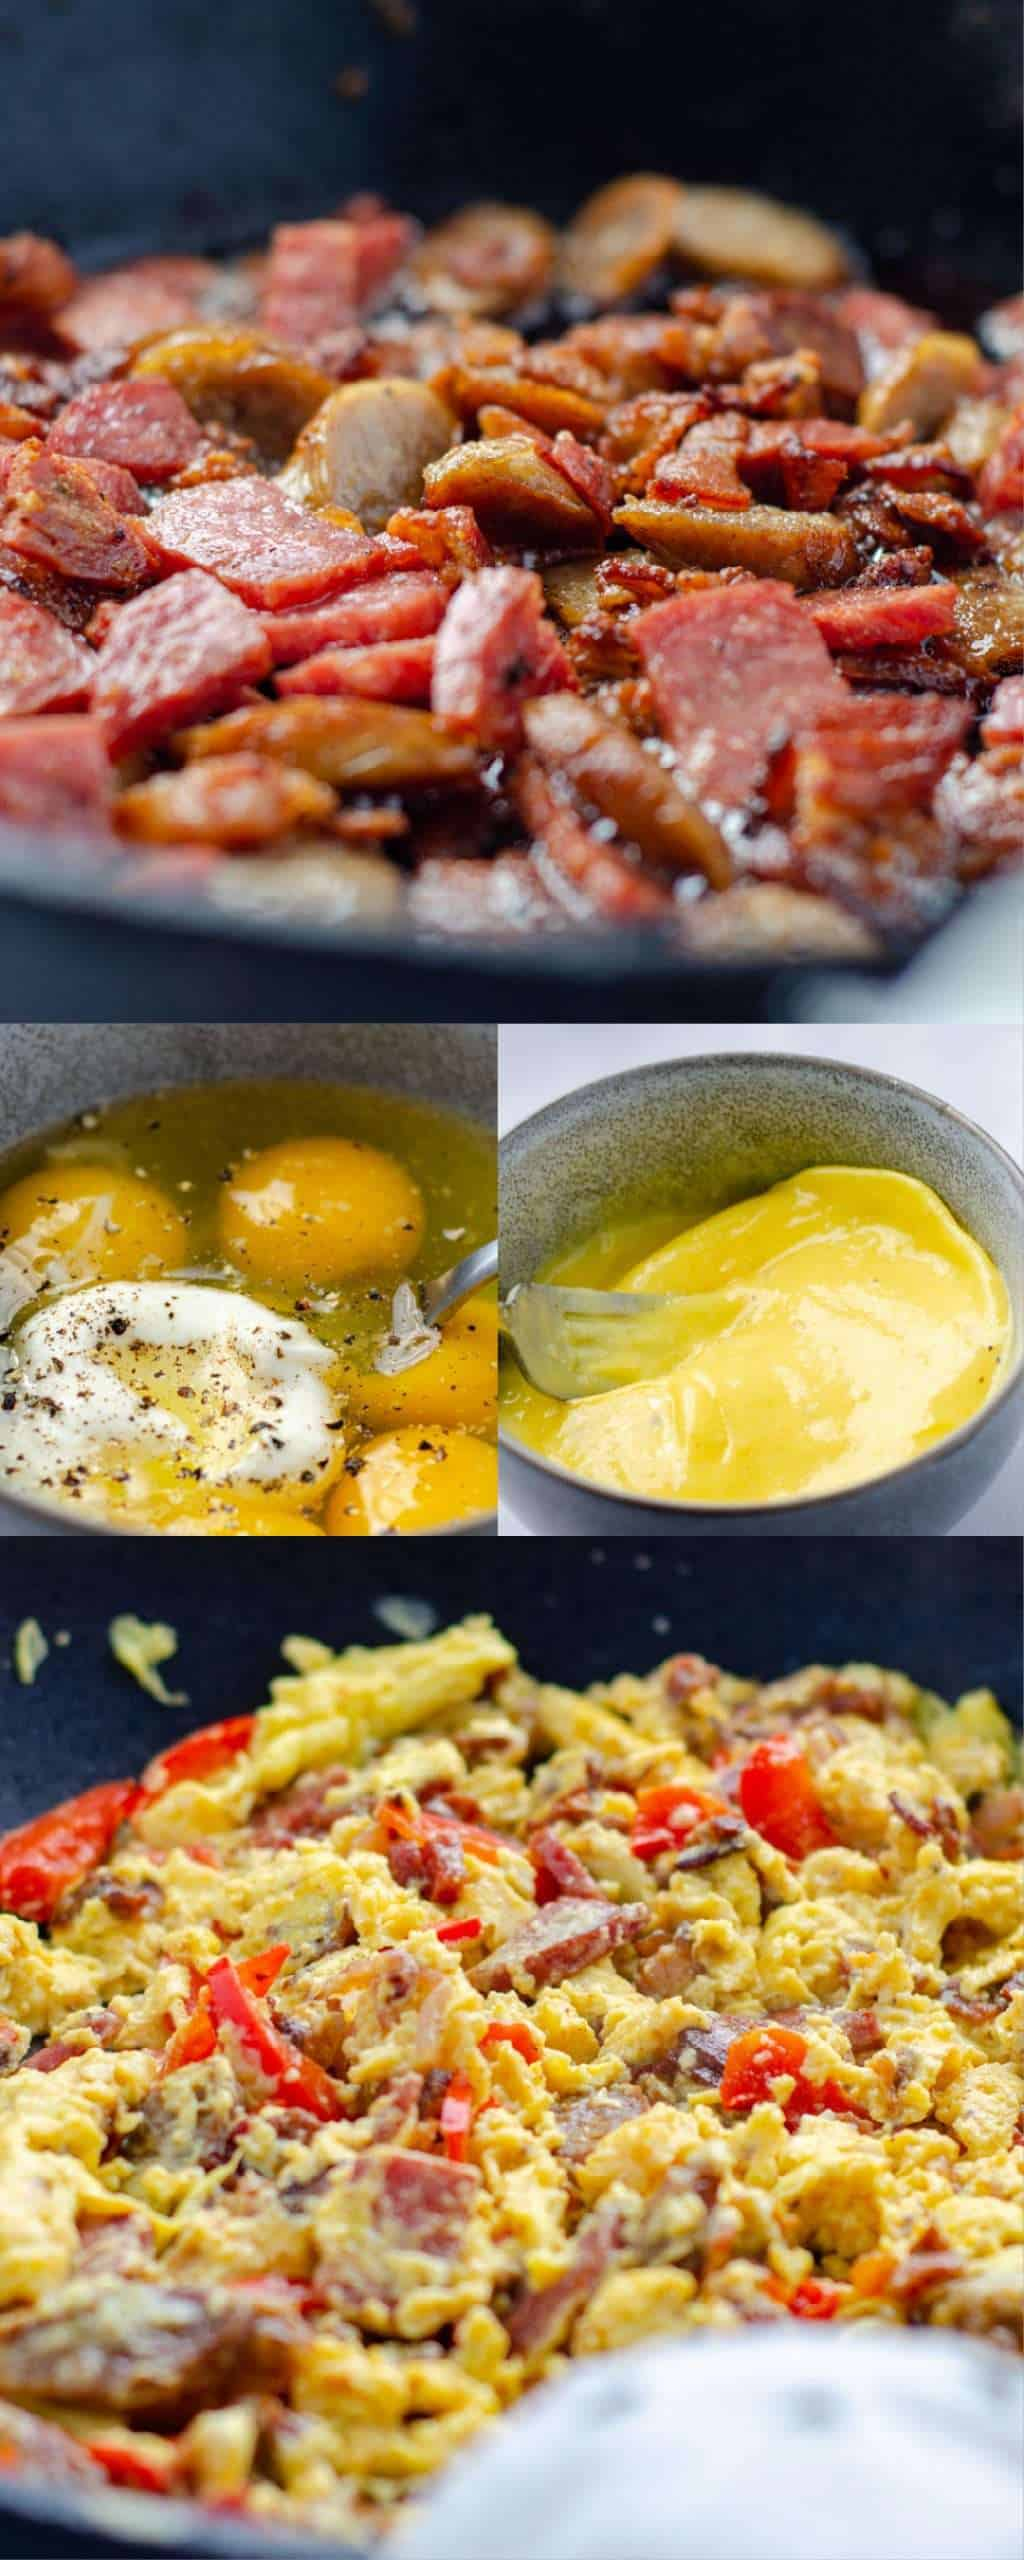 Recipe sequence image for protein scrambled eggs